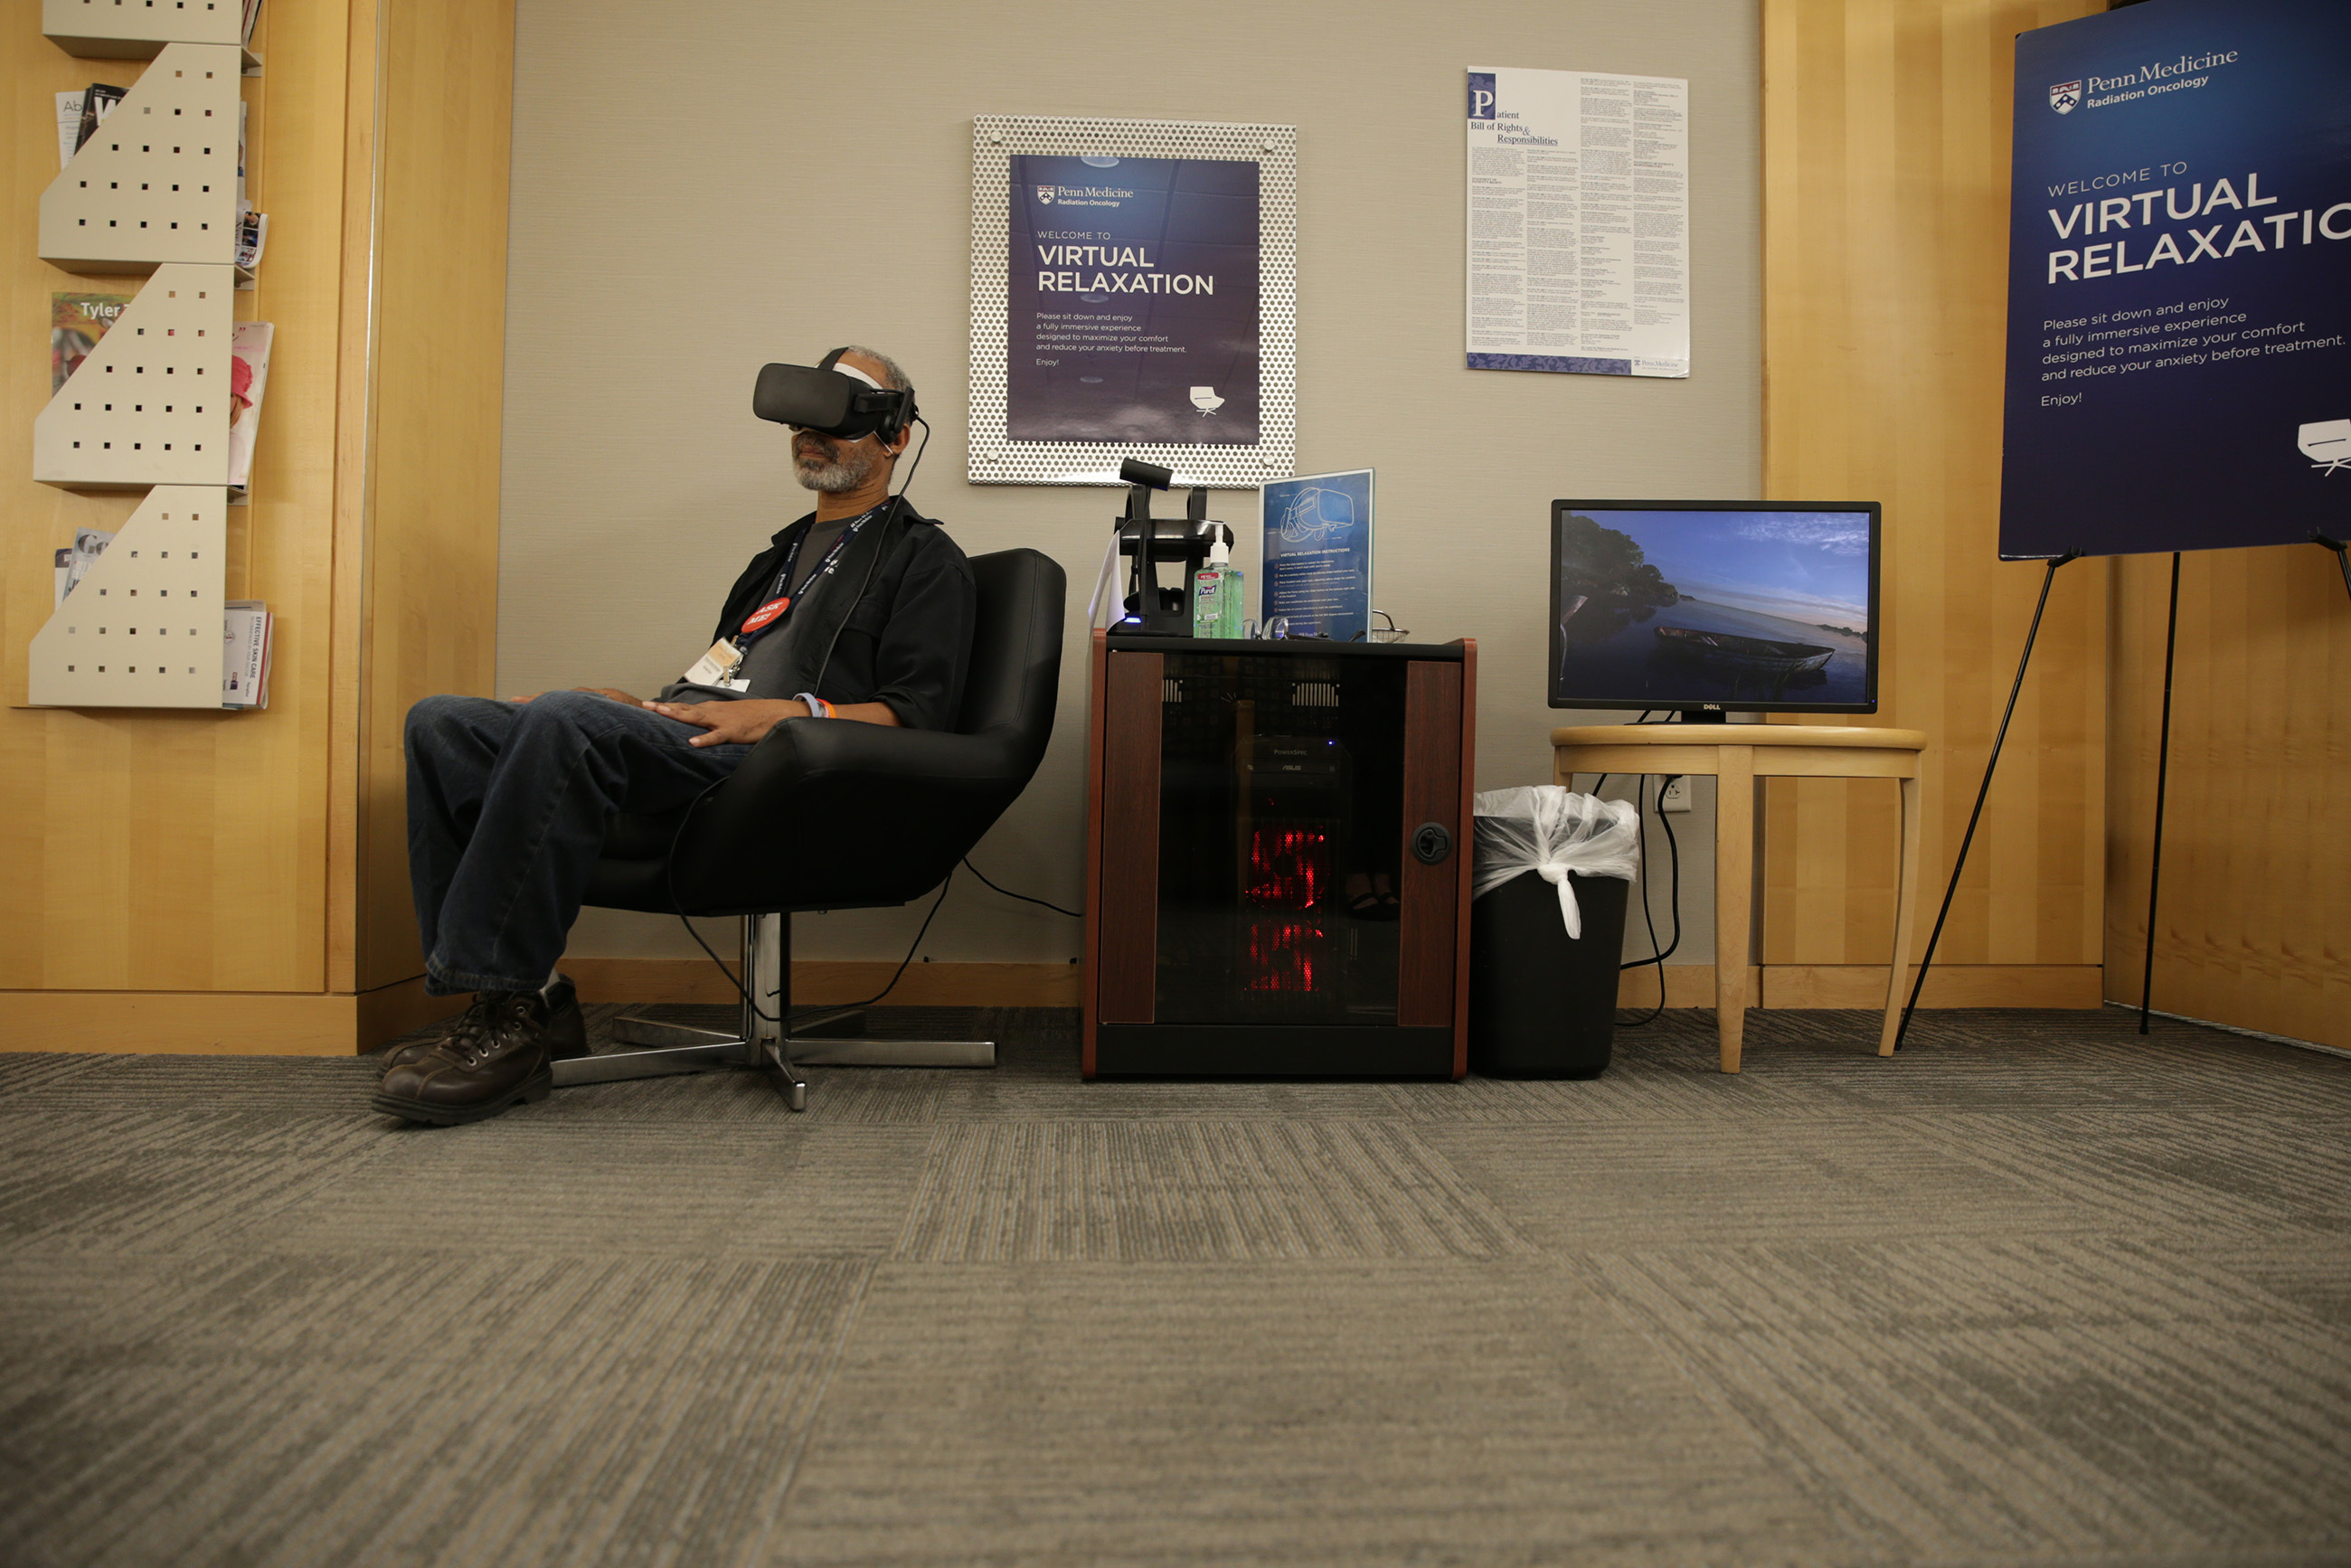 Michael Kent, an alumni patient uses the virtual reality relaxation station at the Roberts